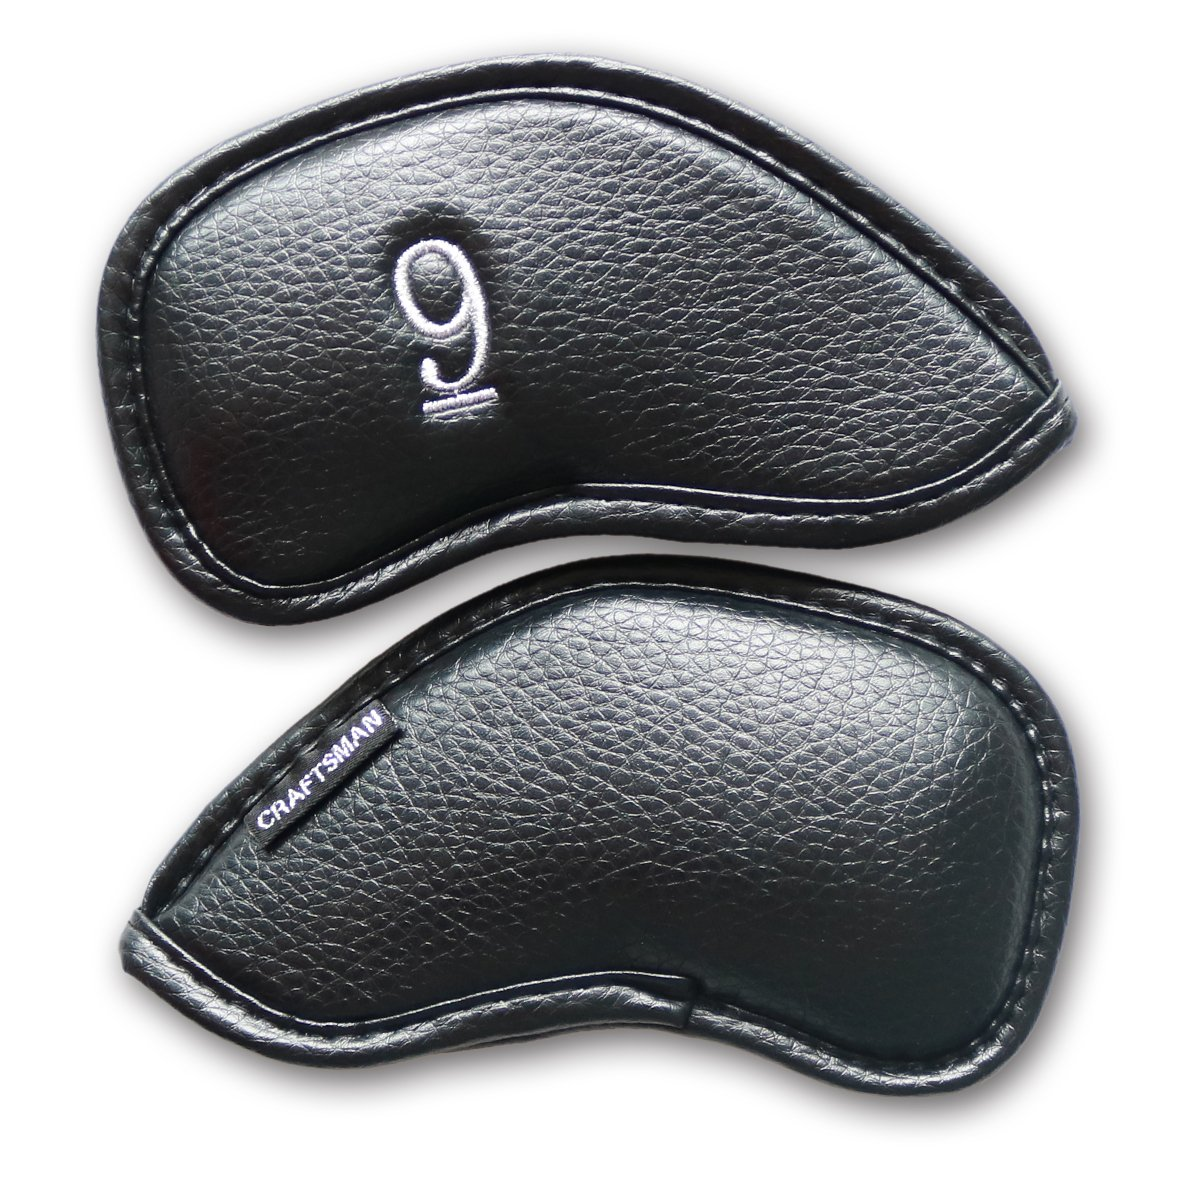 Craftsman Golf #3#4#5#6#7#8#9 AW SW PW LW Iron Headcovers Head Covers (#9) by Craftsman Golf